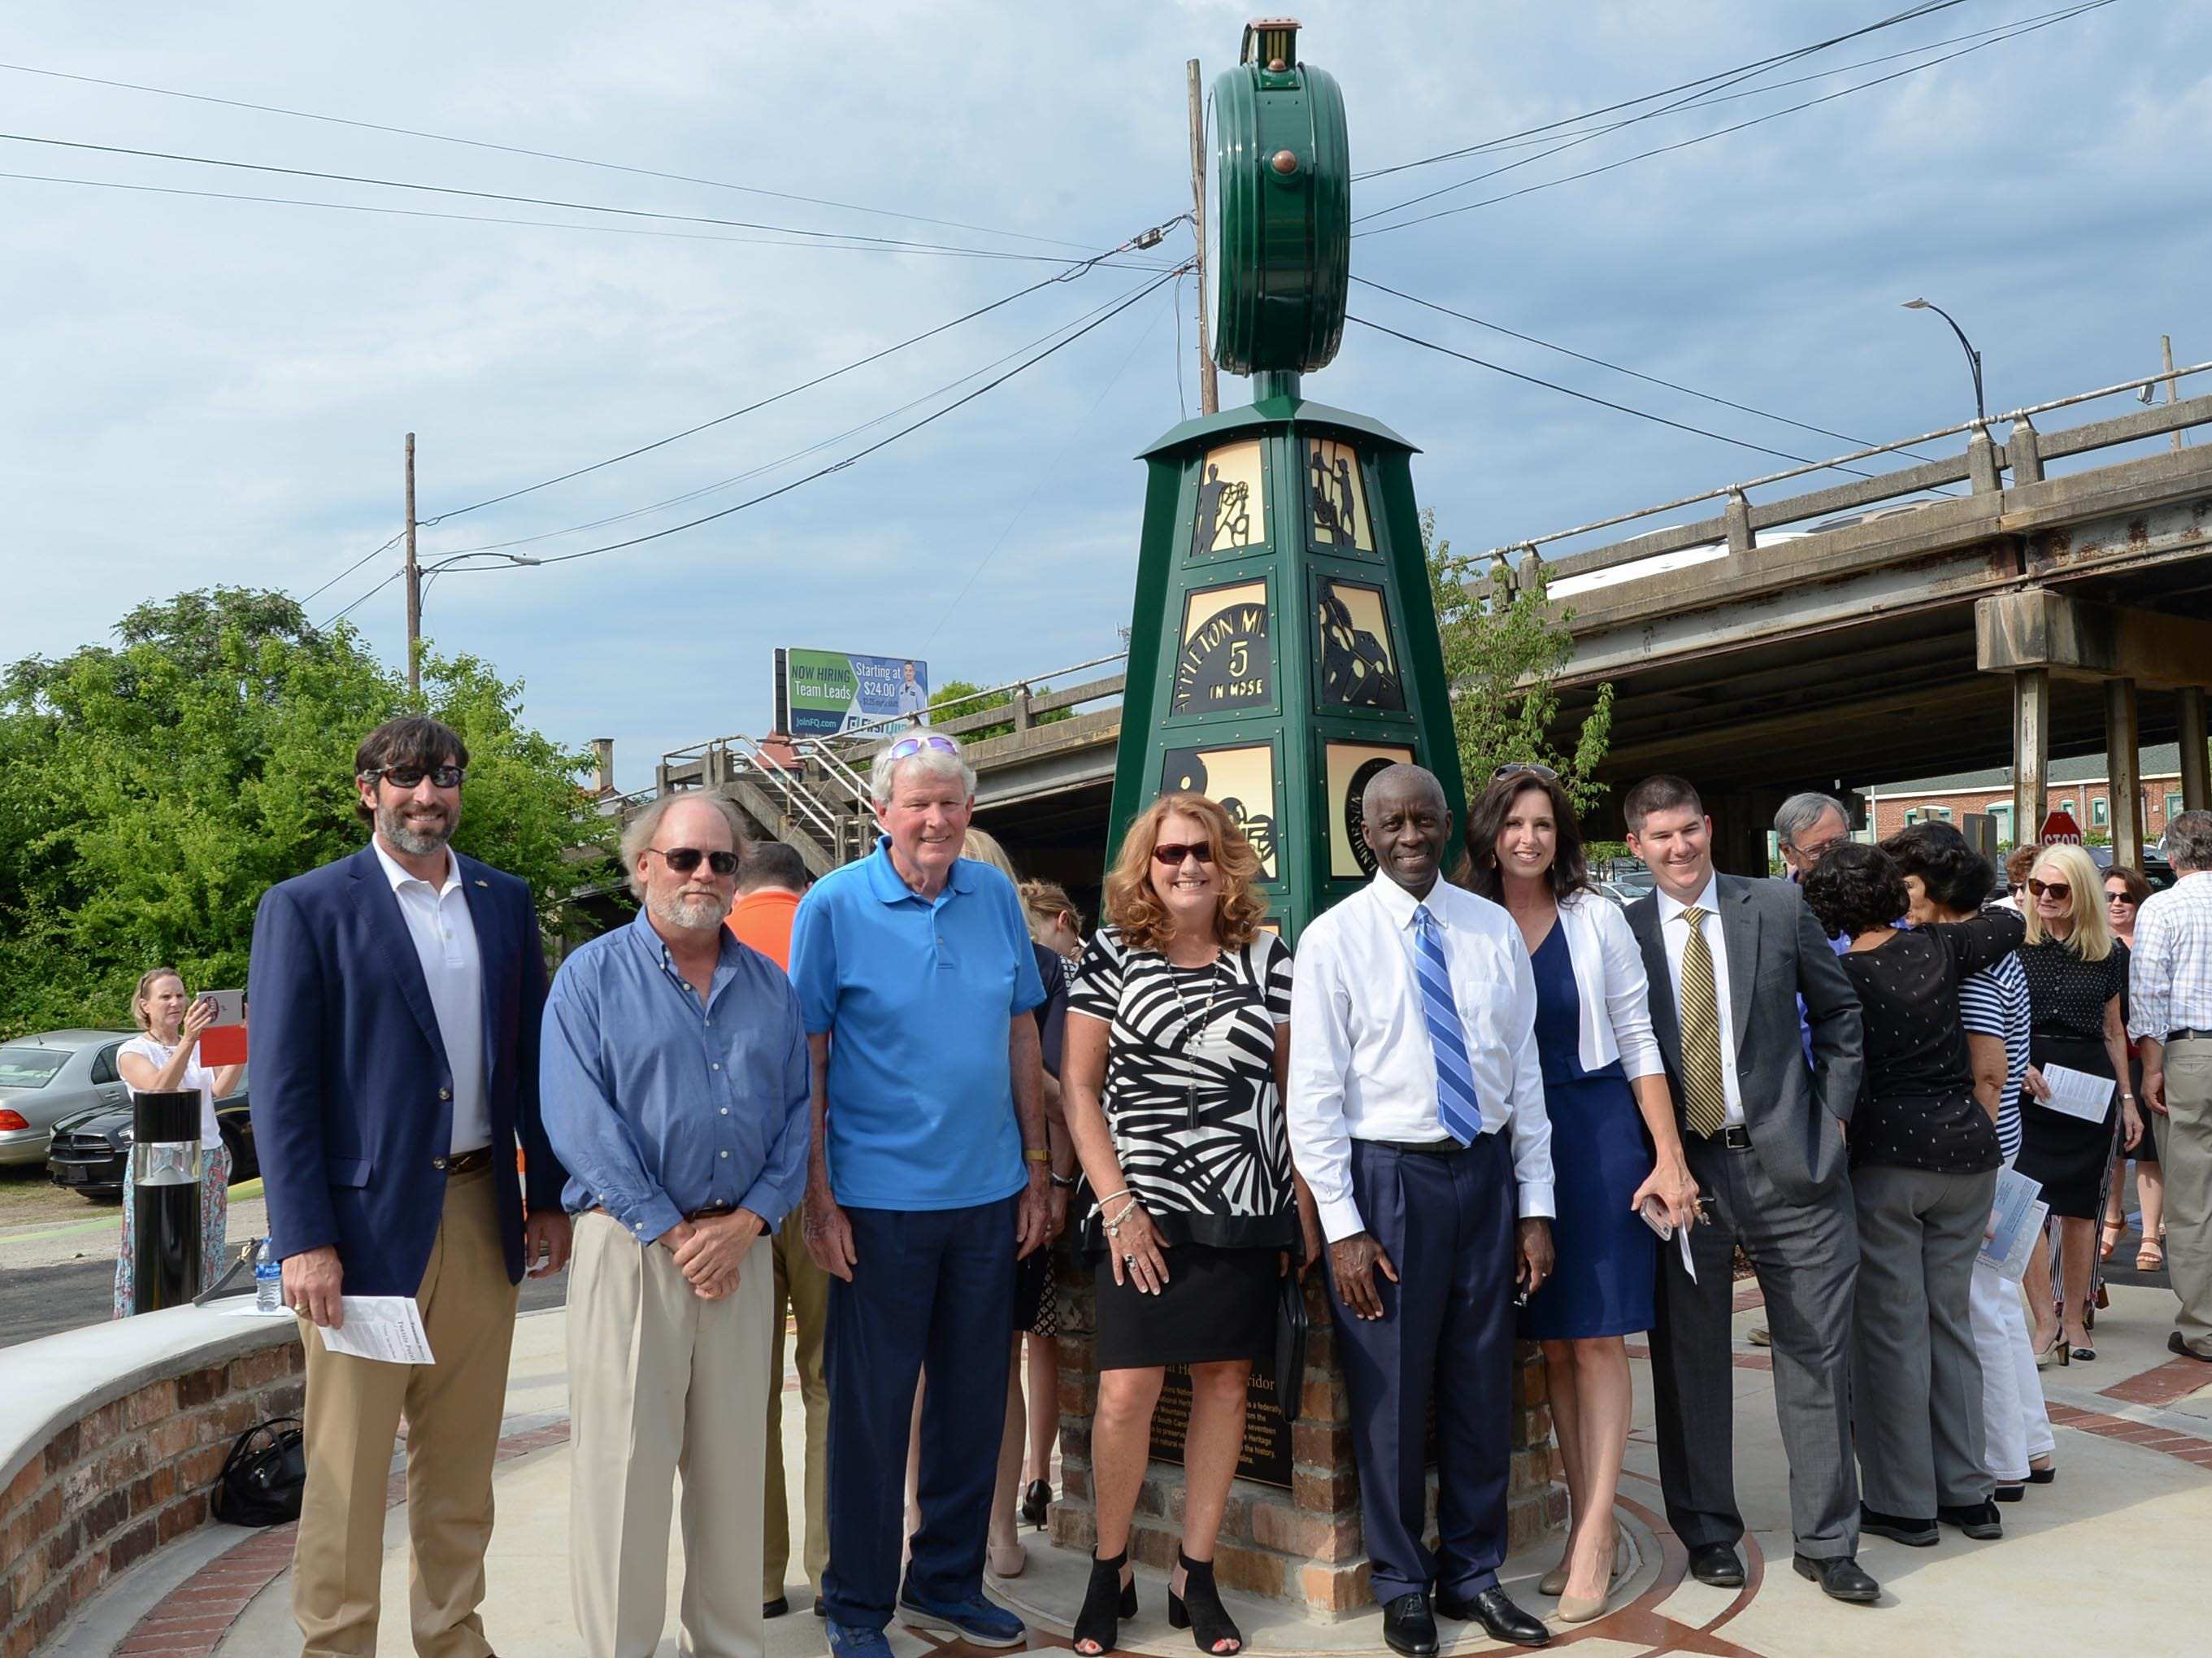 City Councilman John Roberts, left, Designer Scott Foster, John Miller, Jr., Kimberly Spears, Anderson Economic Director, and Mayor Terence Roberts, Michelle McCollum, President and CEO of SC Heritage Corridor, and City Manager David McCuen, stand for a photo after helping unveil the Textile Point monument after unveiling it in downtown Anderson Thursday, May 9, 2019. Scott Foster of Anderson designed the monument honoring years of textile mills in Anderson, with support partners from To Benefit Anderson, South Carolina Heritage Corridor, the Rotary Club of Anderson, and the City of Anderson.